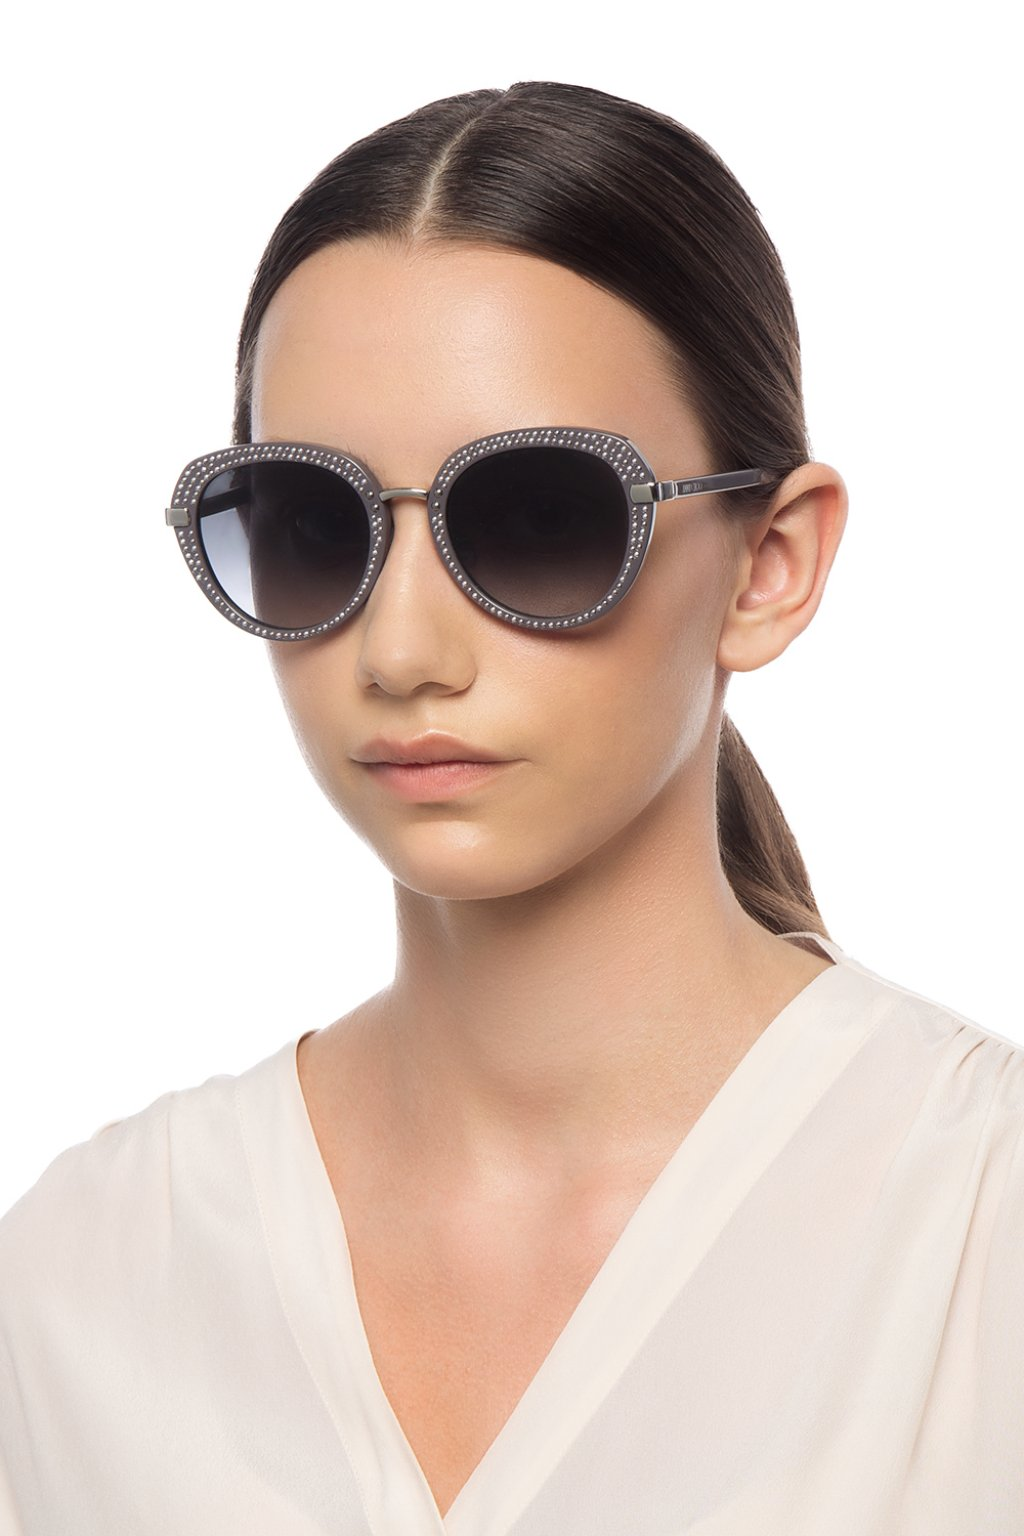 Jimmy Choo 'Mori' sunglasses